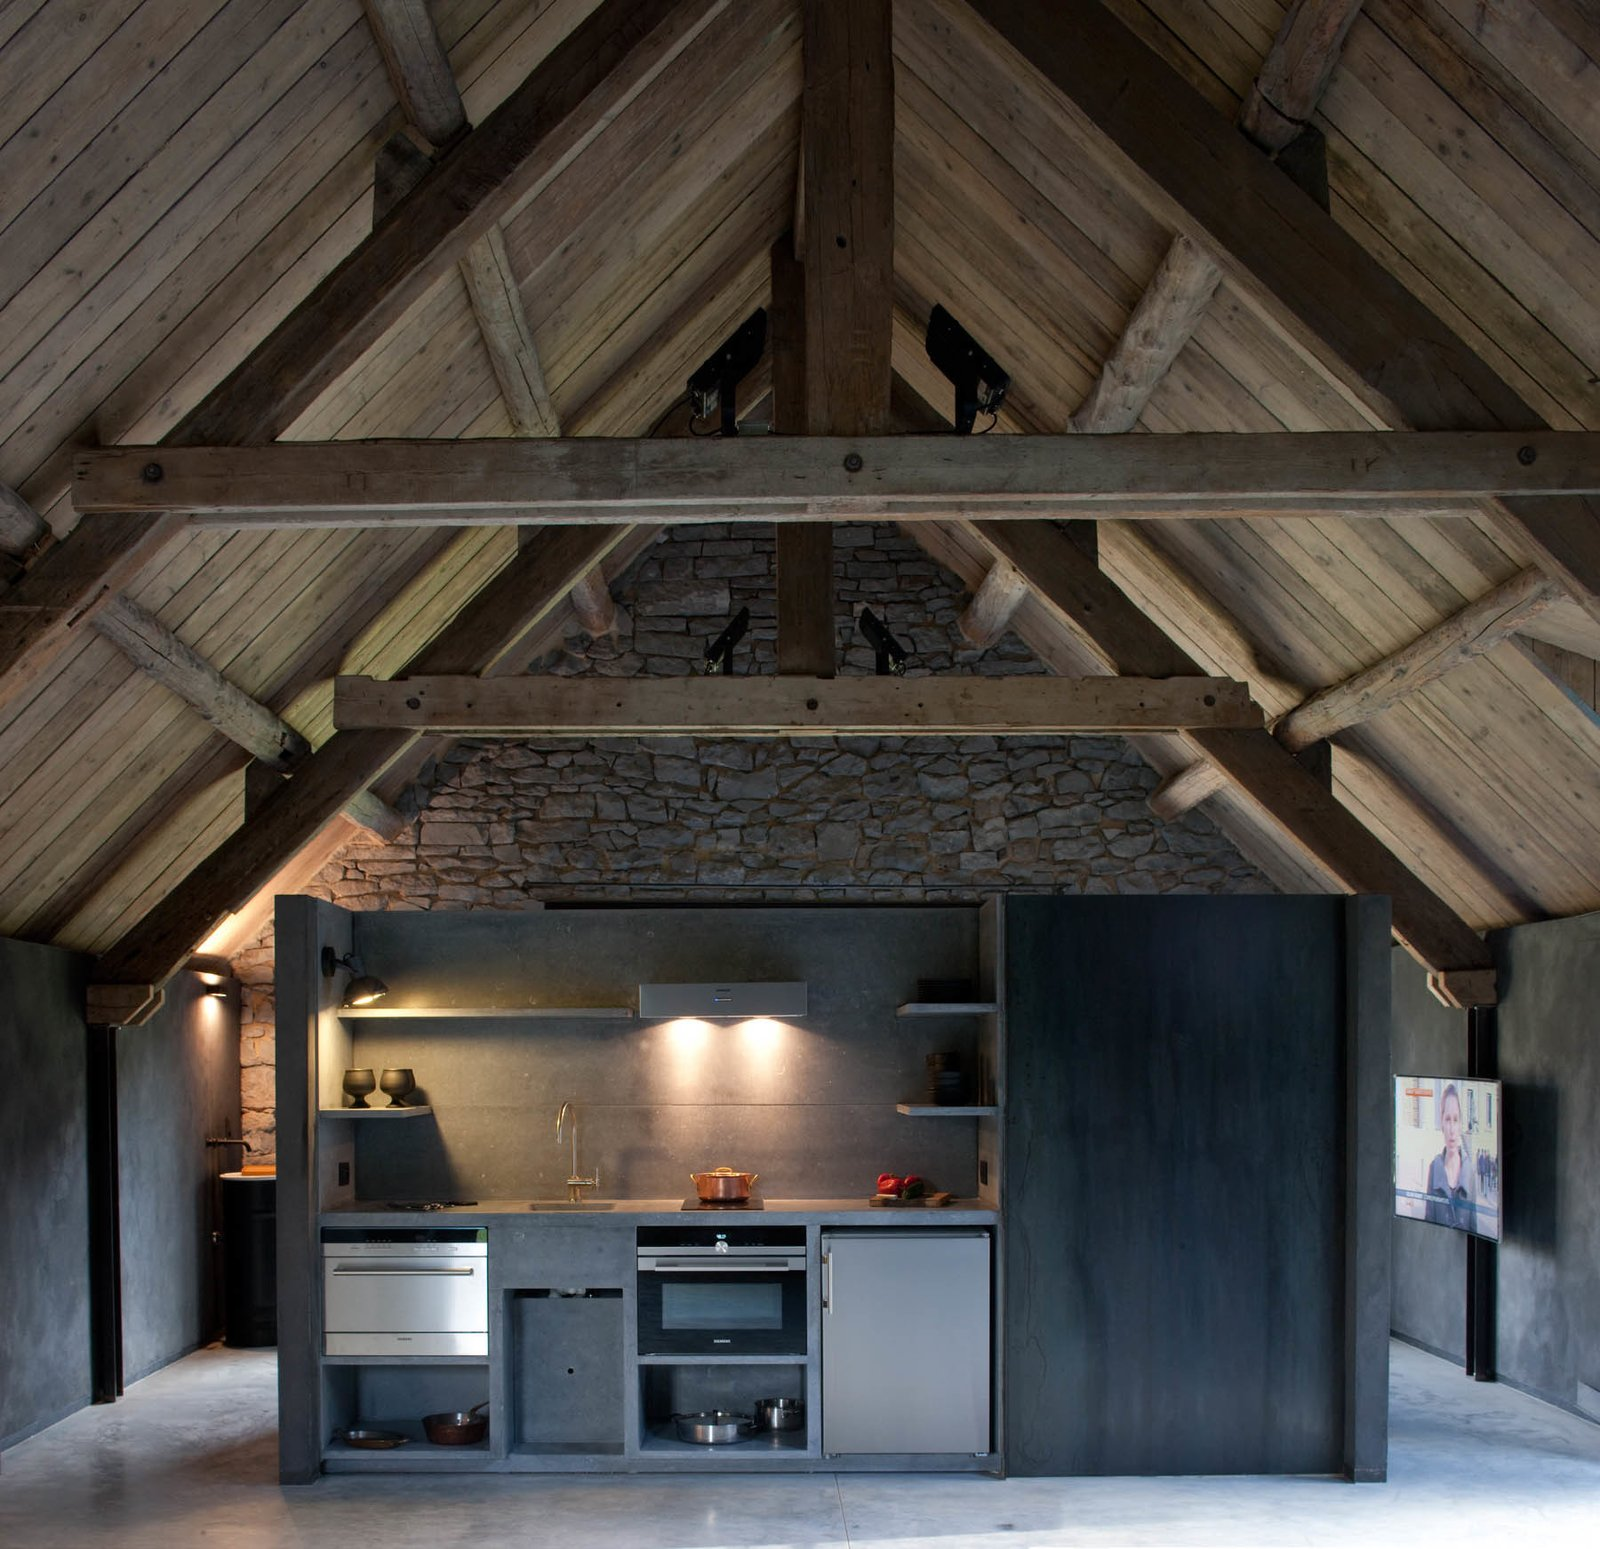 Kitchen, Concrete Floor, Wall Lighting, Wall Oven, Drop In Sink, Refrigerator, and Accent Lighting An additional kitchen has been placed in the loft for added convenience.  Photo 9 of 16 in Stay at an Old Converted Train Station in the Belgian Countryside